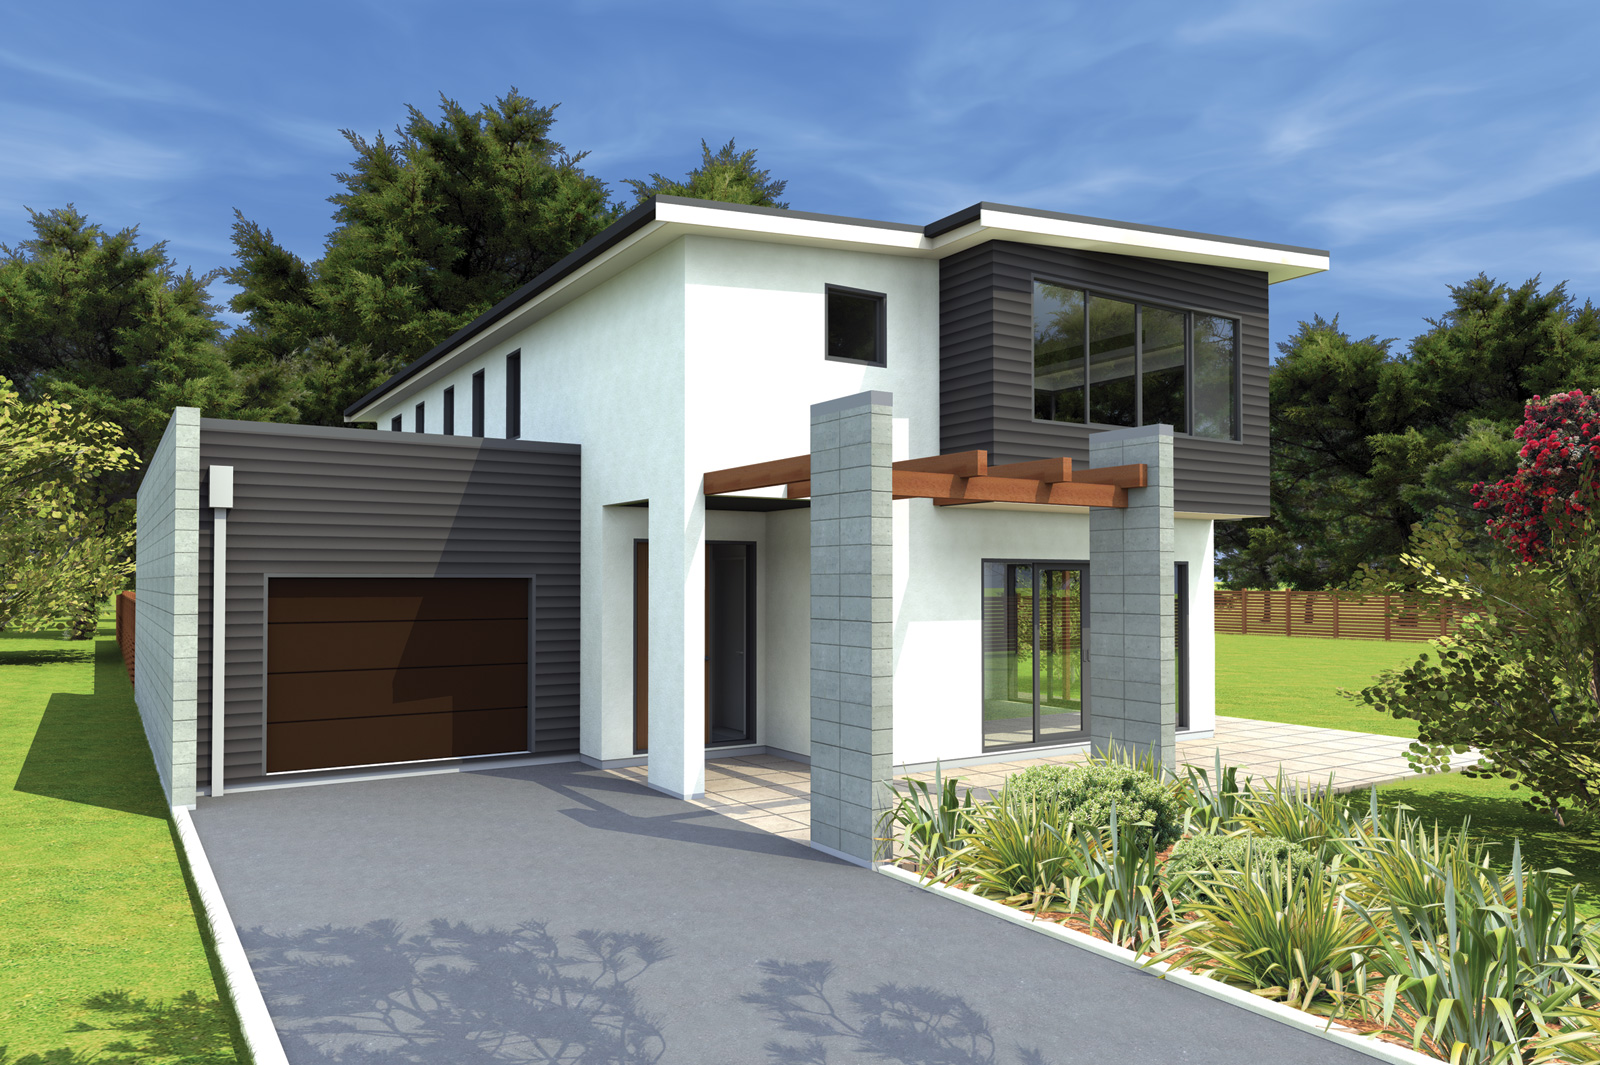 New home designs latest new modern homes designs new zealand - New homes designs photos ...